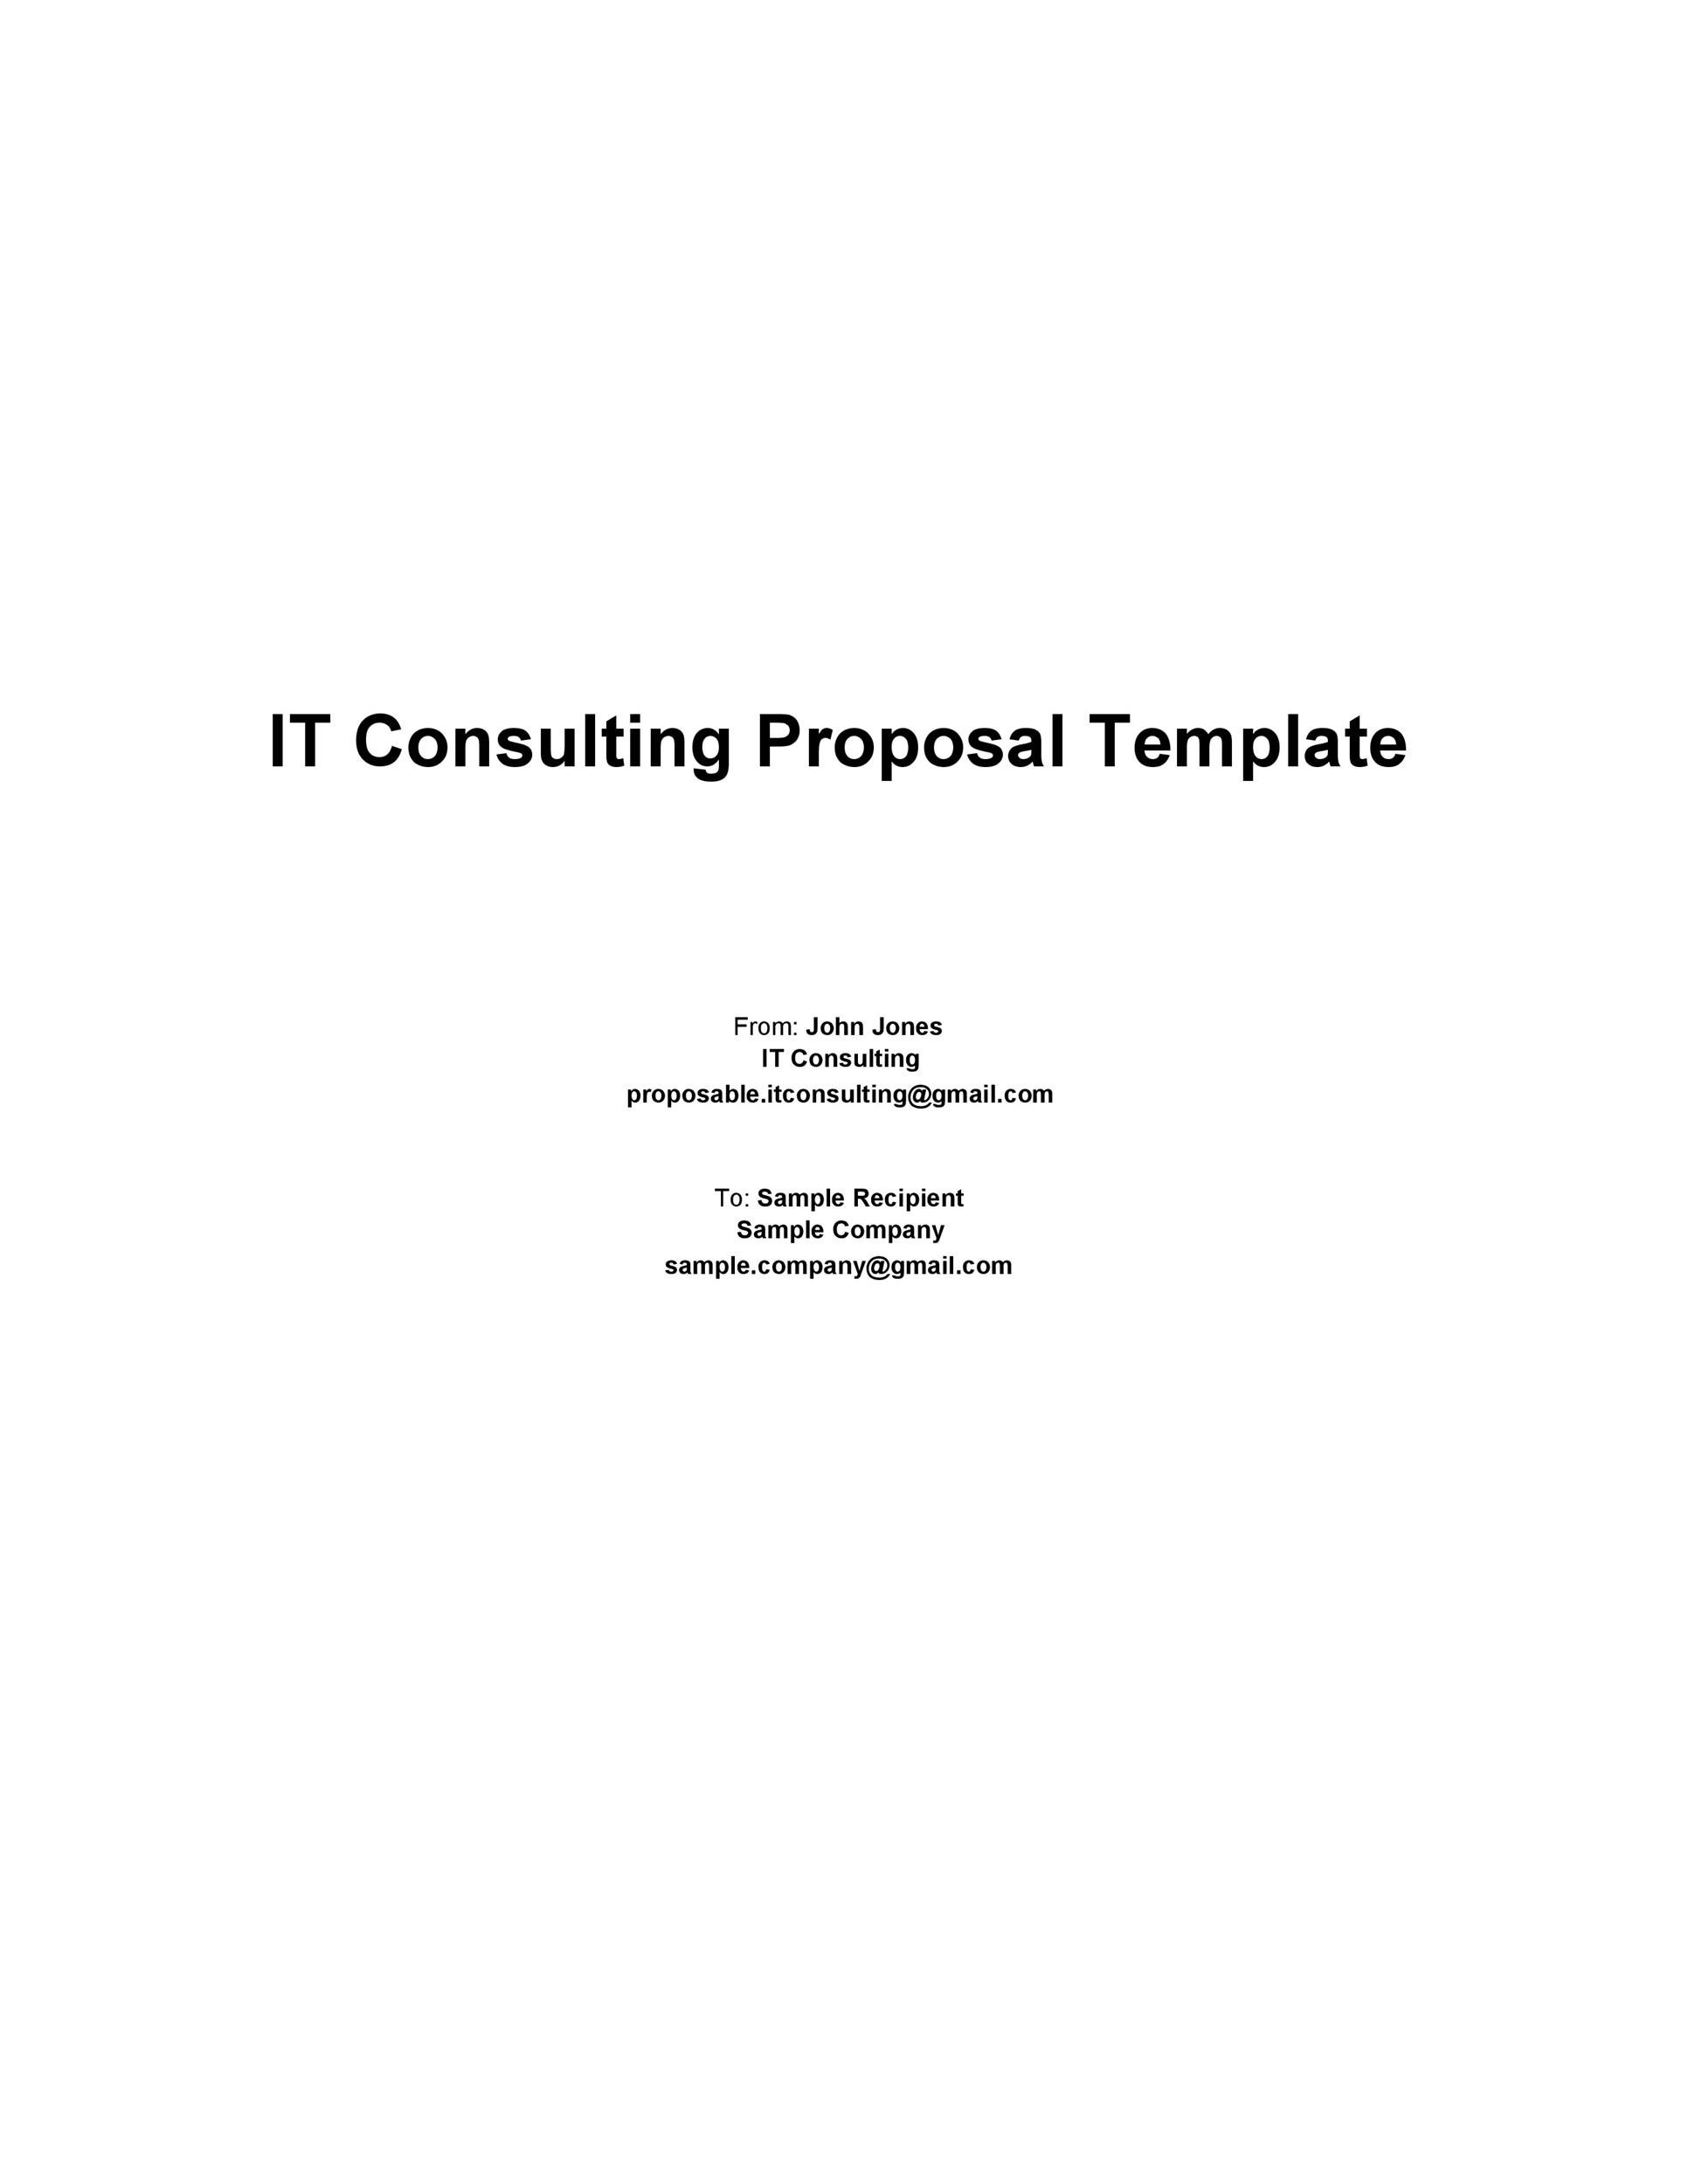 Free consulting proposal template 06